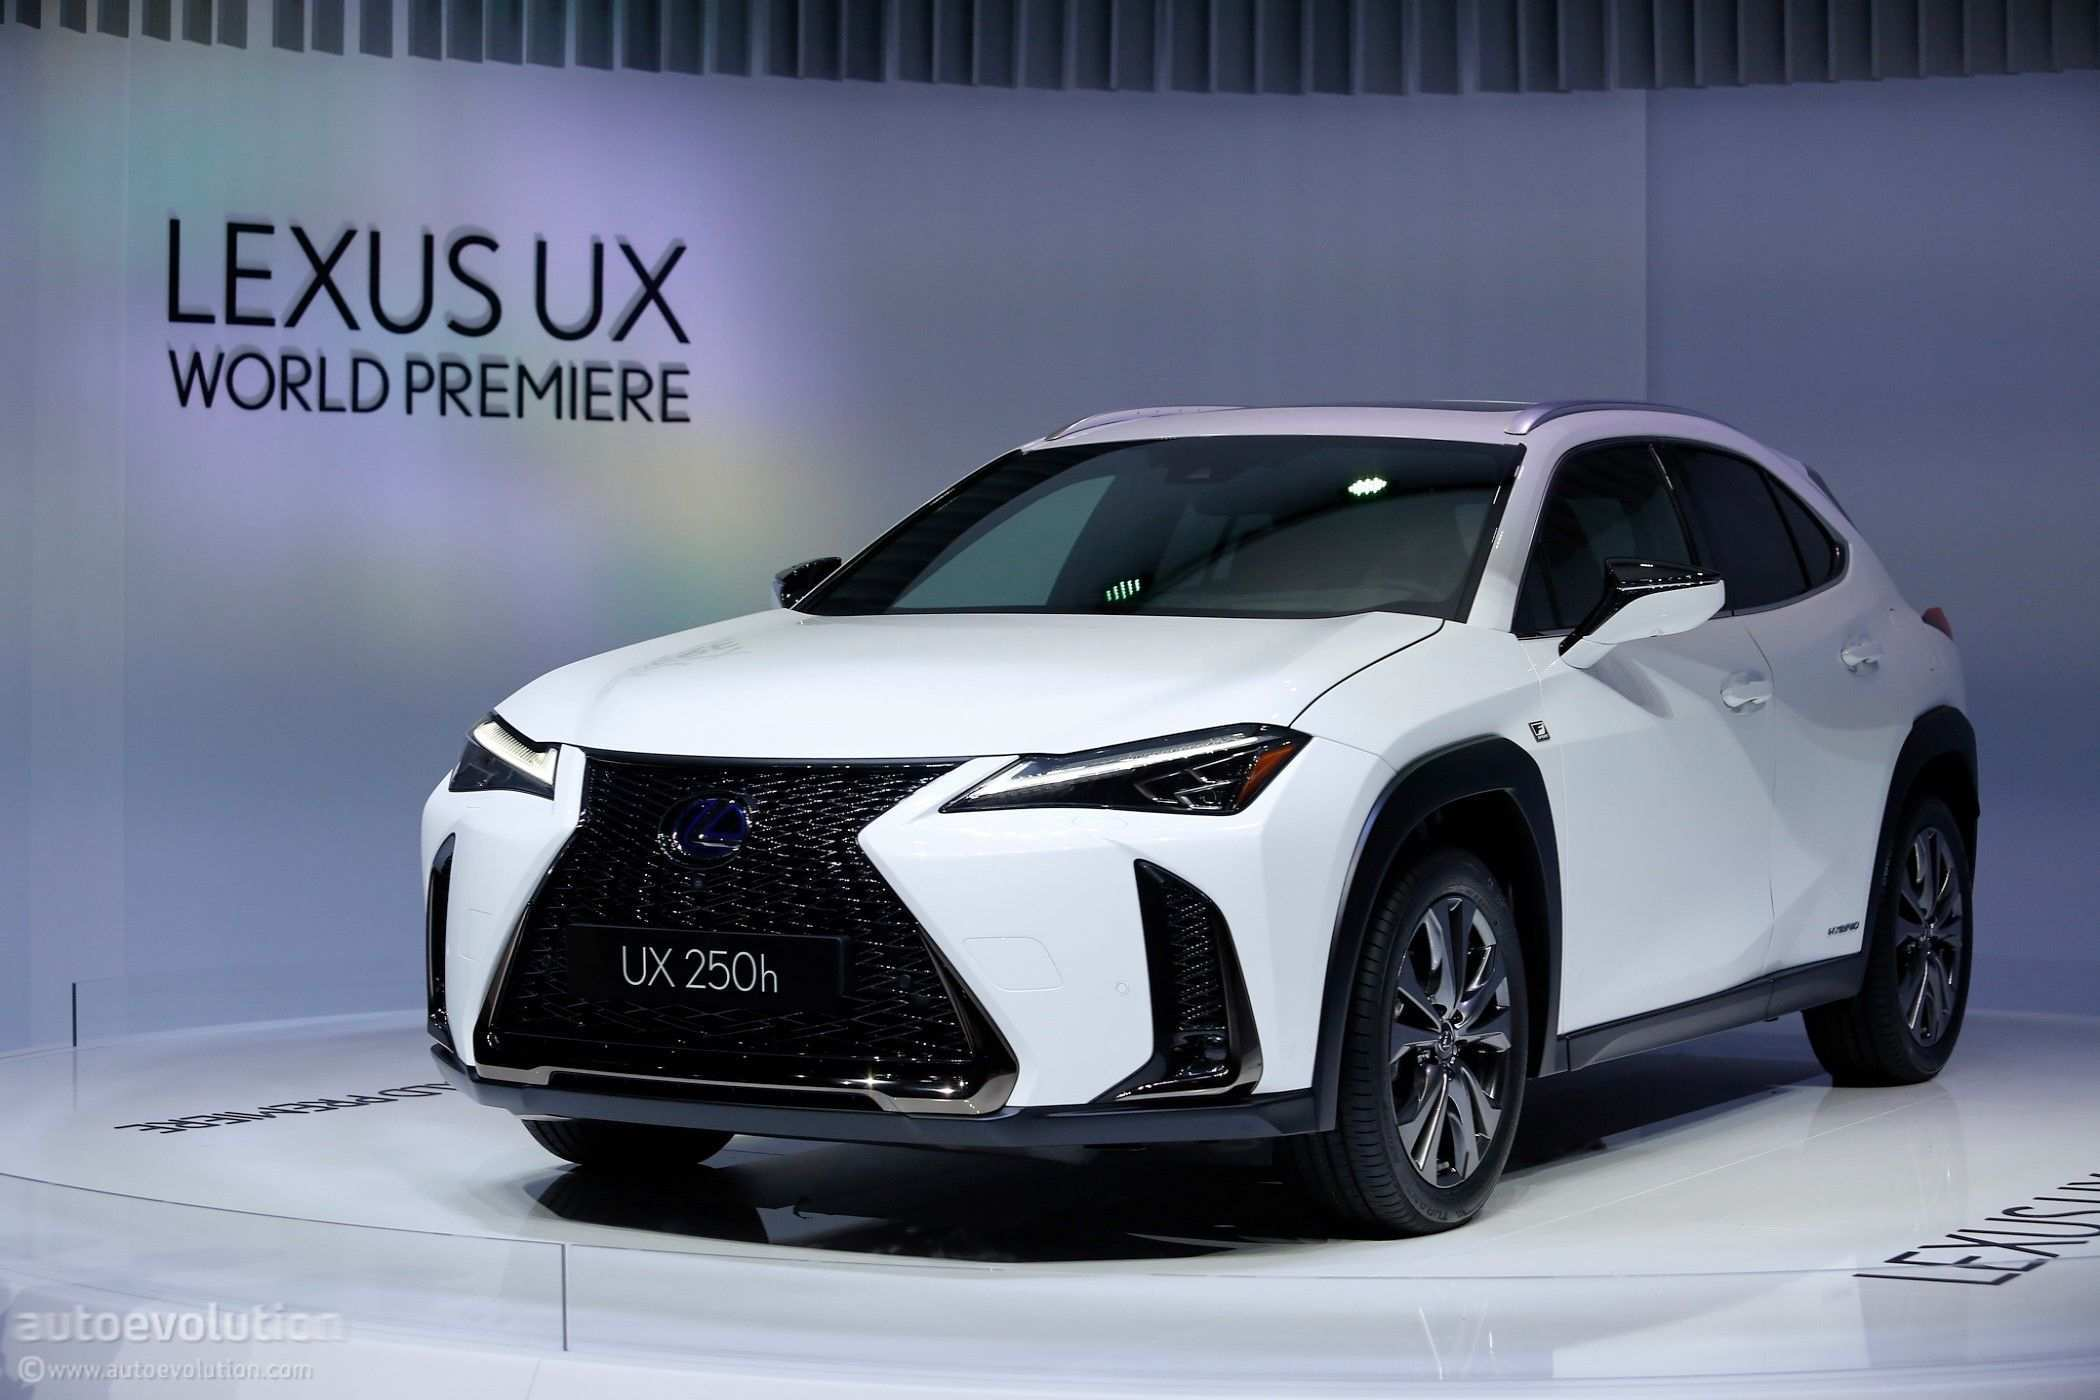 94 Best Review 2020 Lexus IS 250 Price with 2020 Lexus IS 250